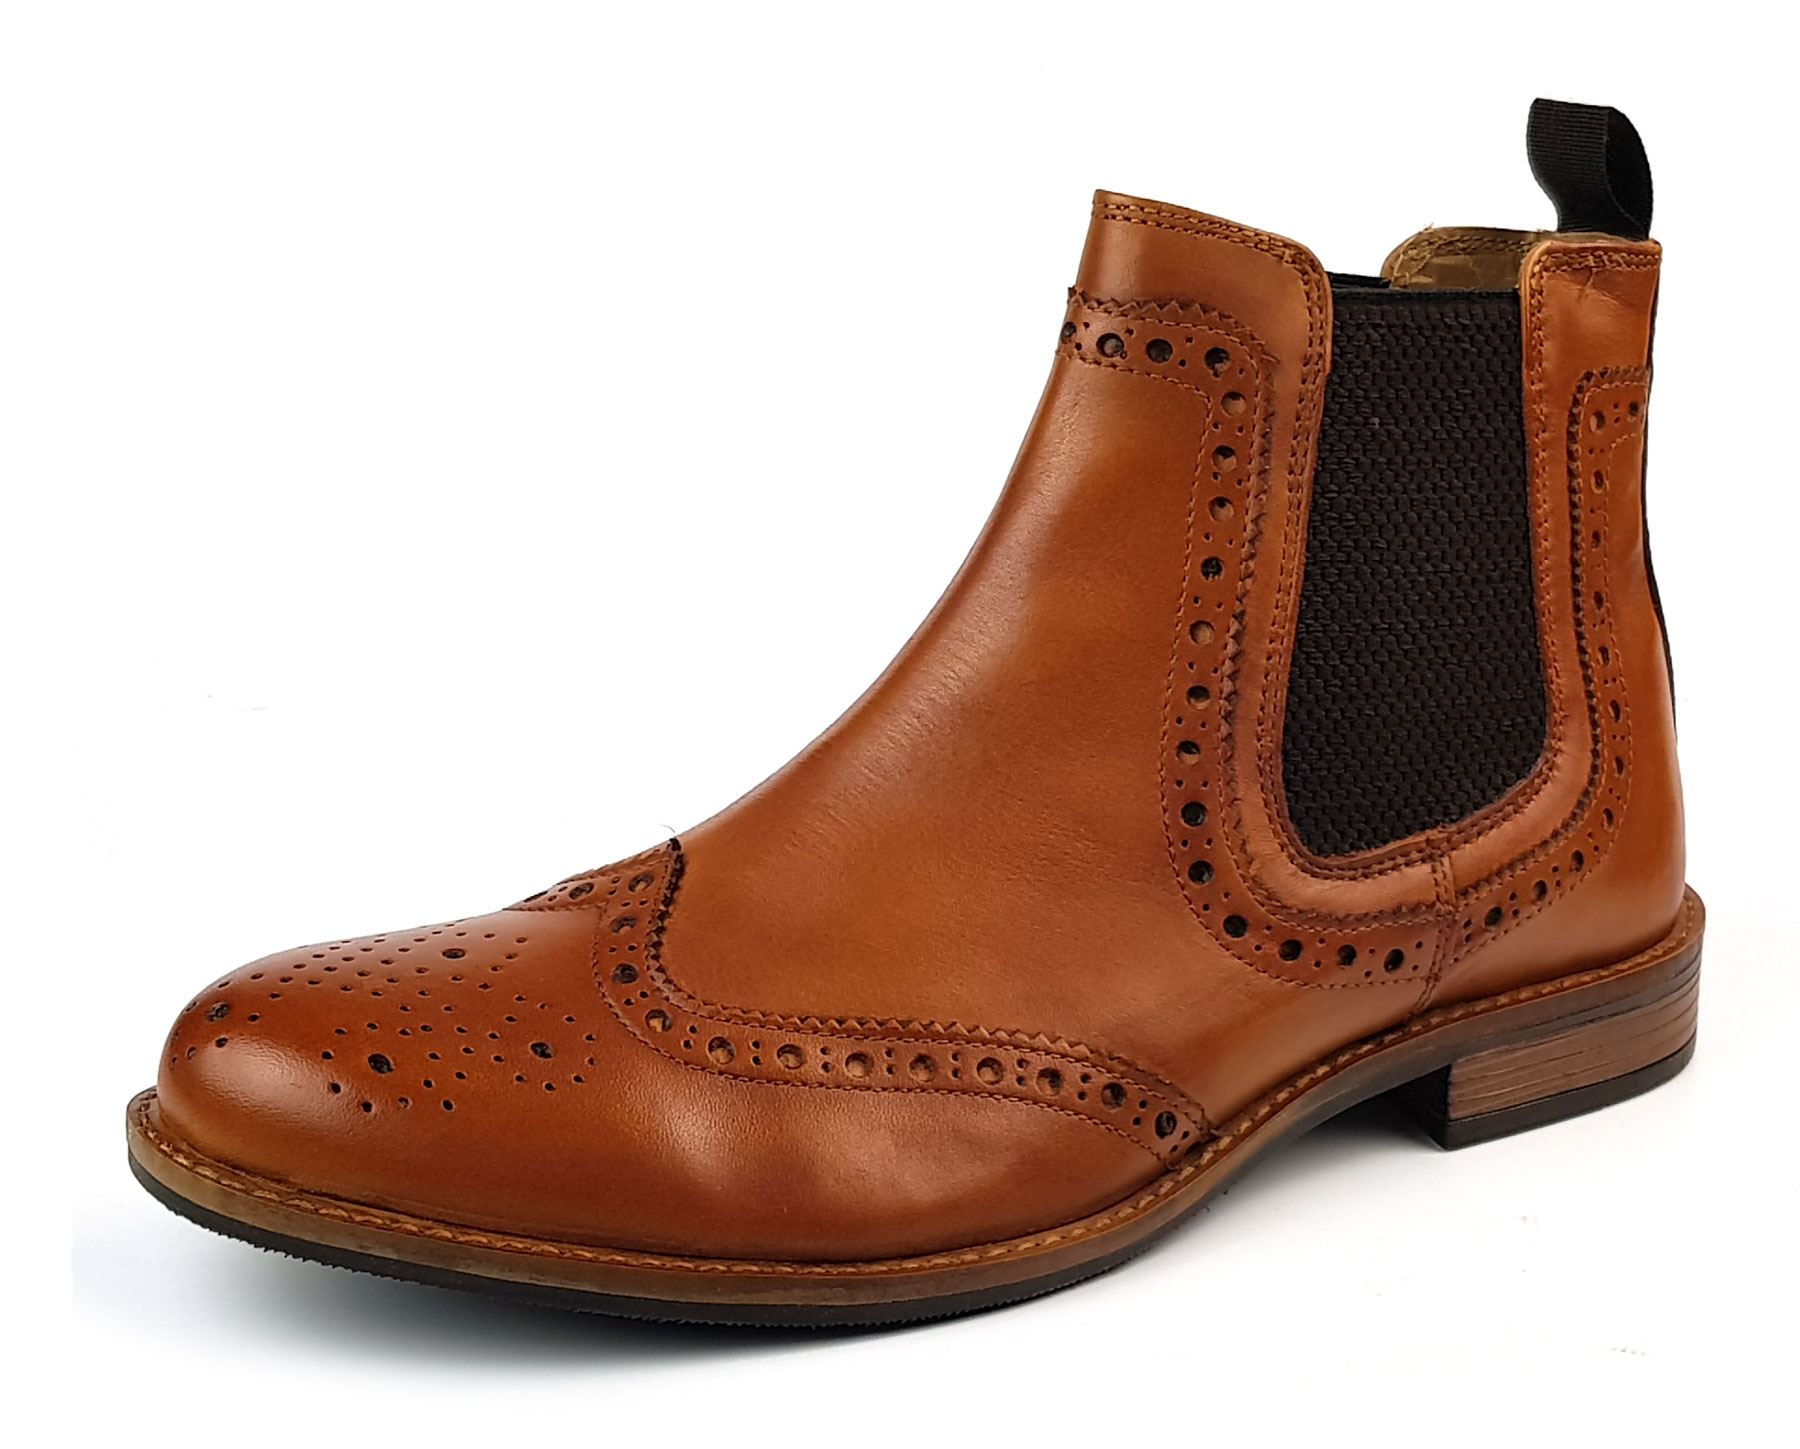 Details about Roamers M143BT Leather Chelsea Pull On Mens Dealer Brogue Boots Tan